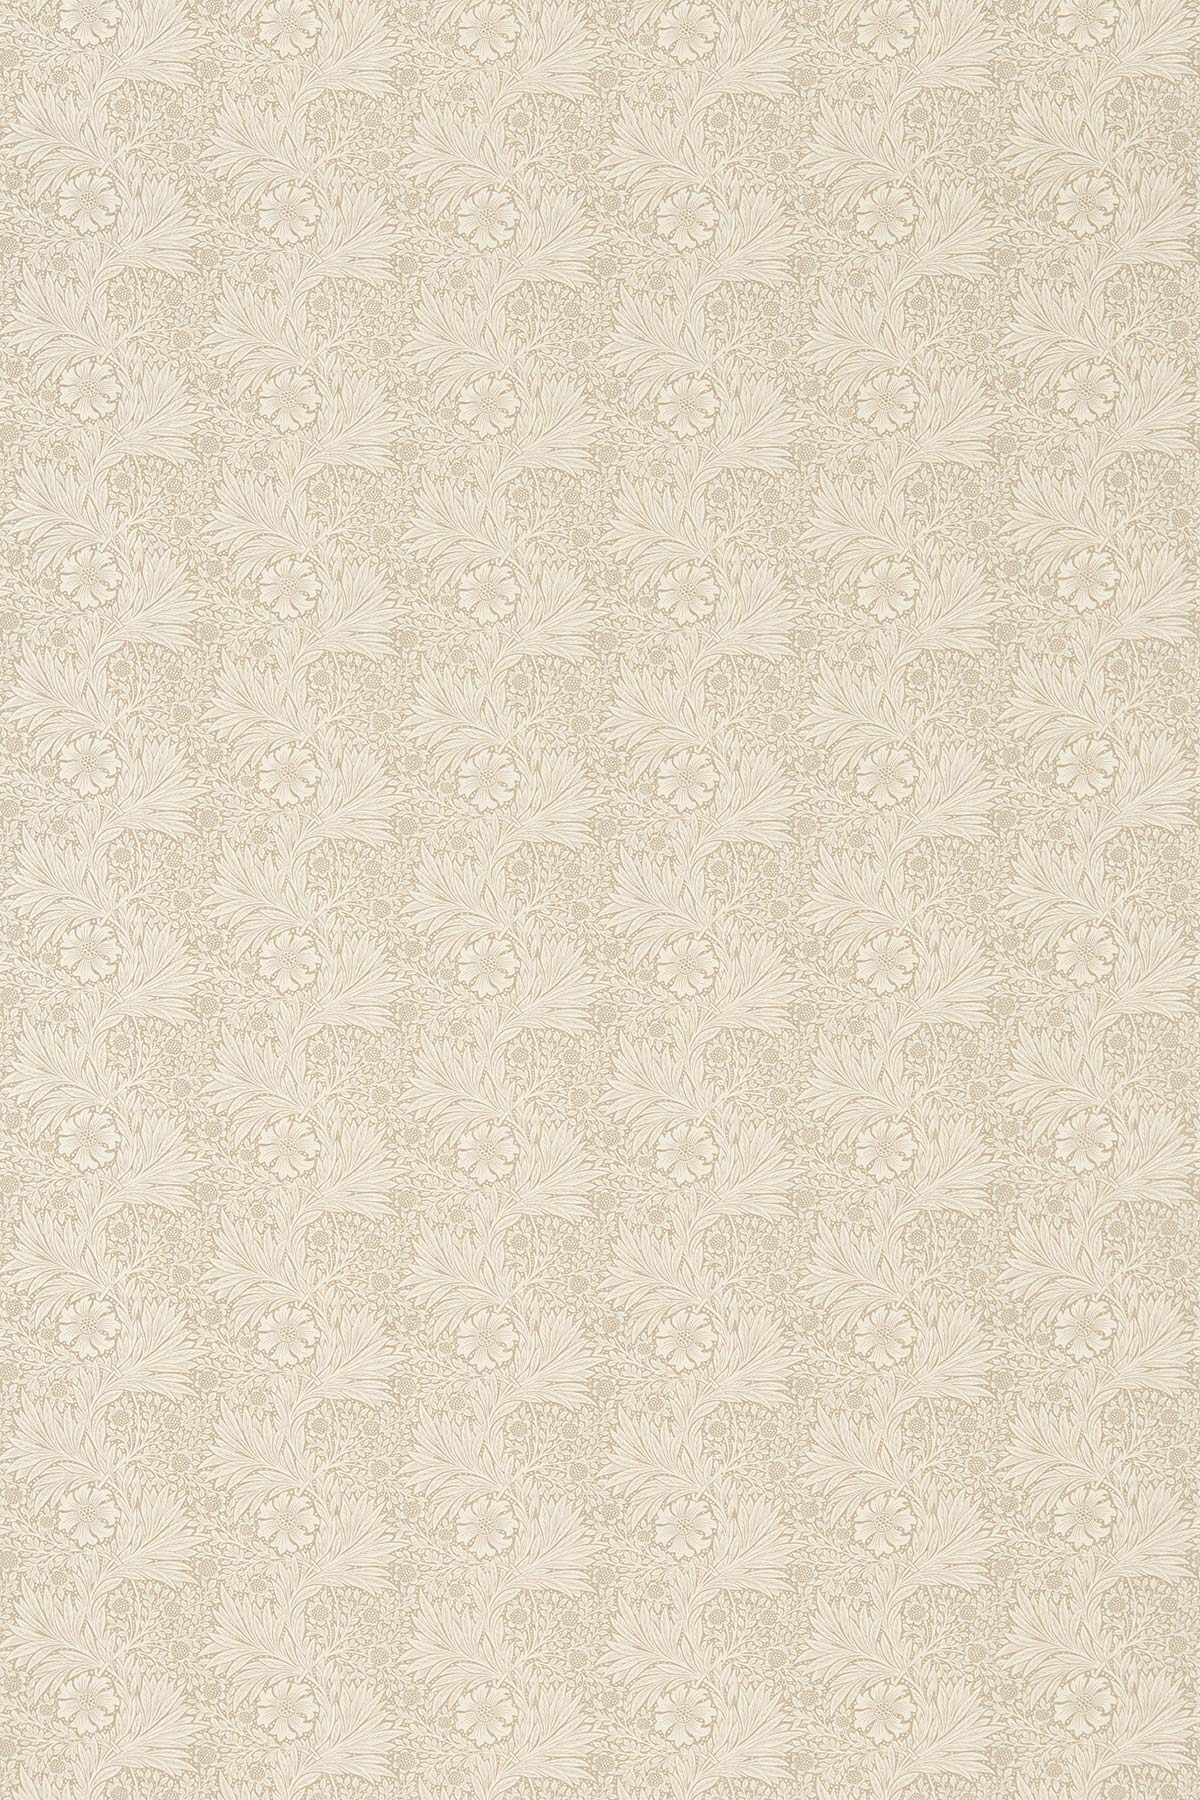 Marigold Fabric - Linen / Ivory - by Morris